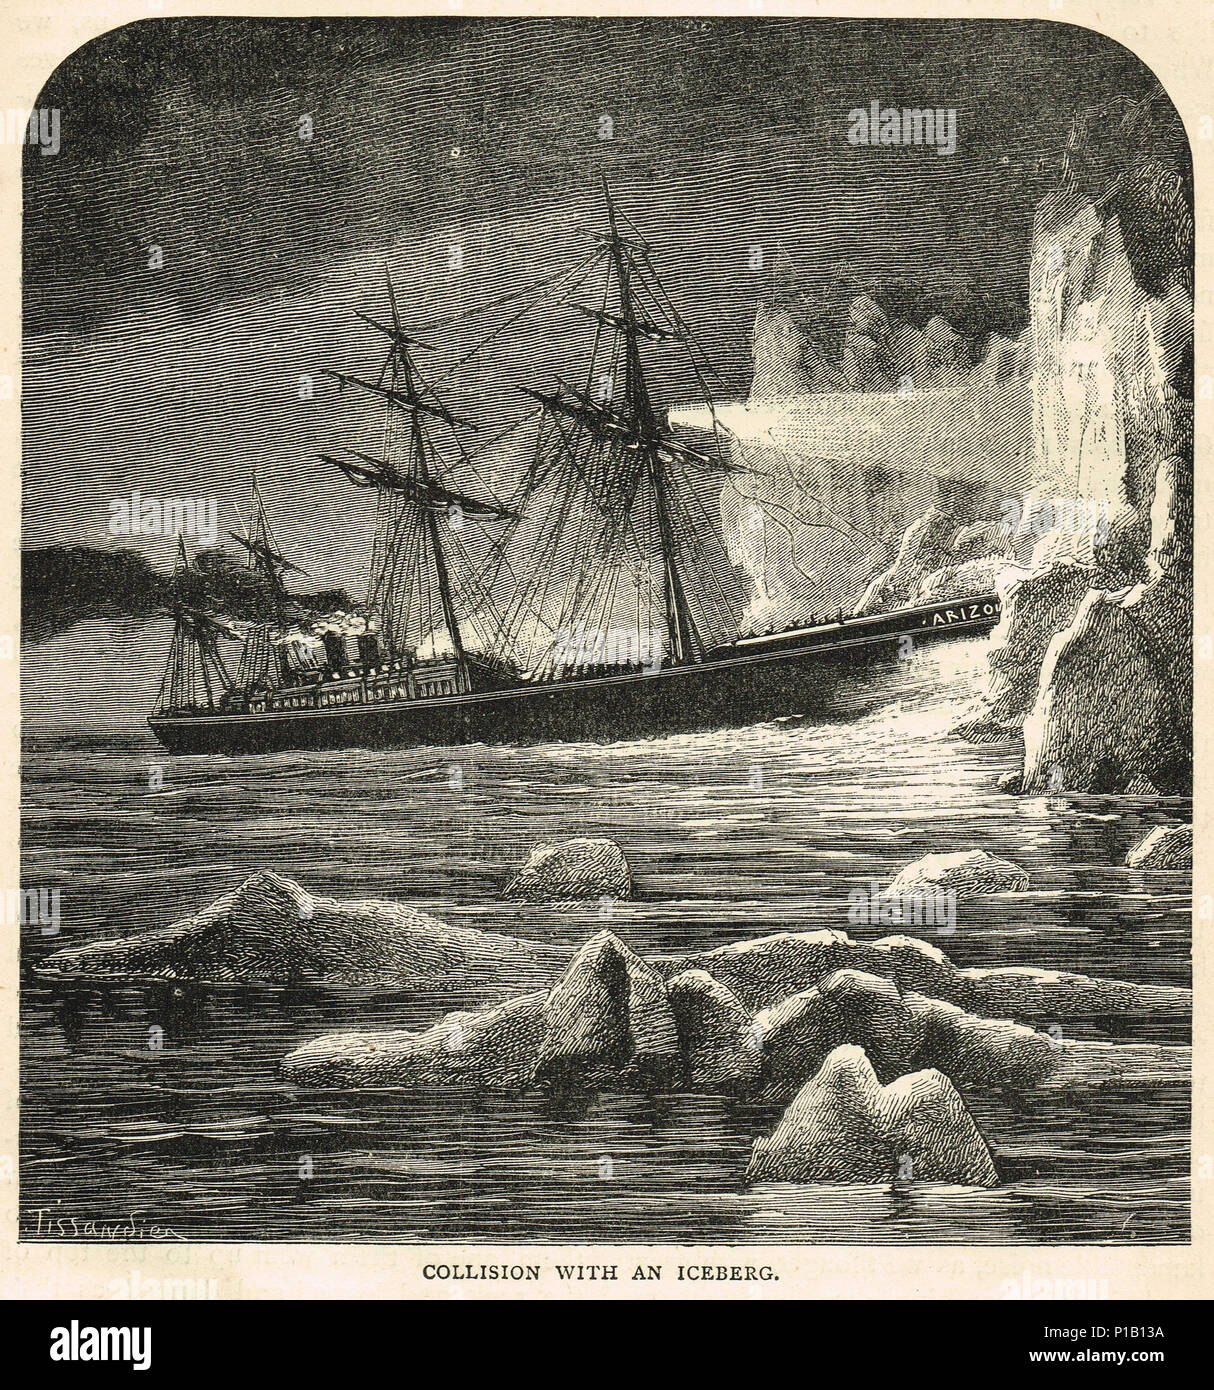 SS Arizona collision with an iceberg whilst en route to Liverpool, 7 November 1879 - Stock Image